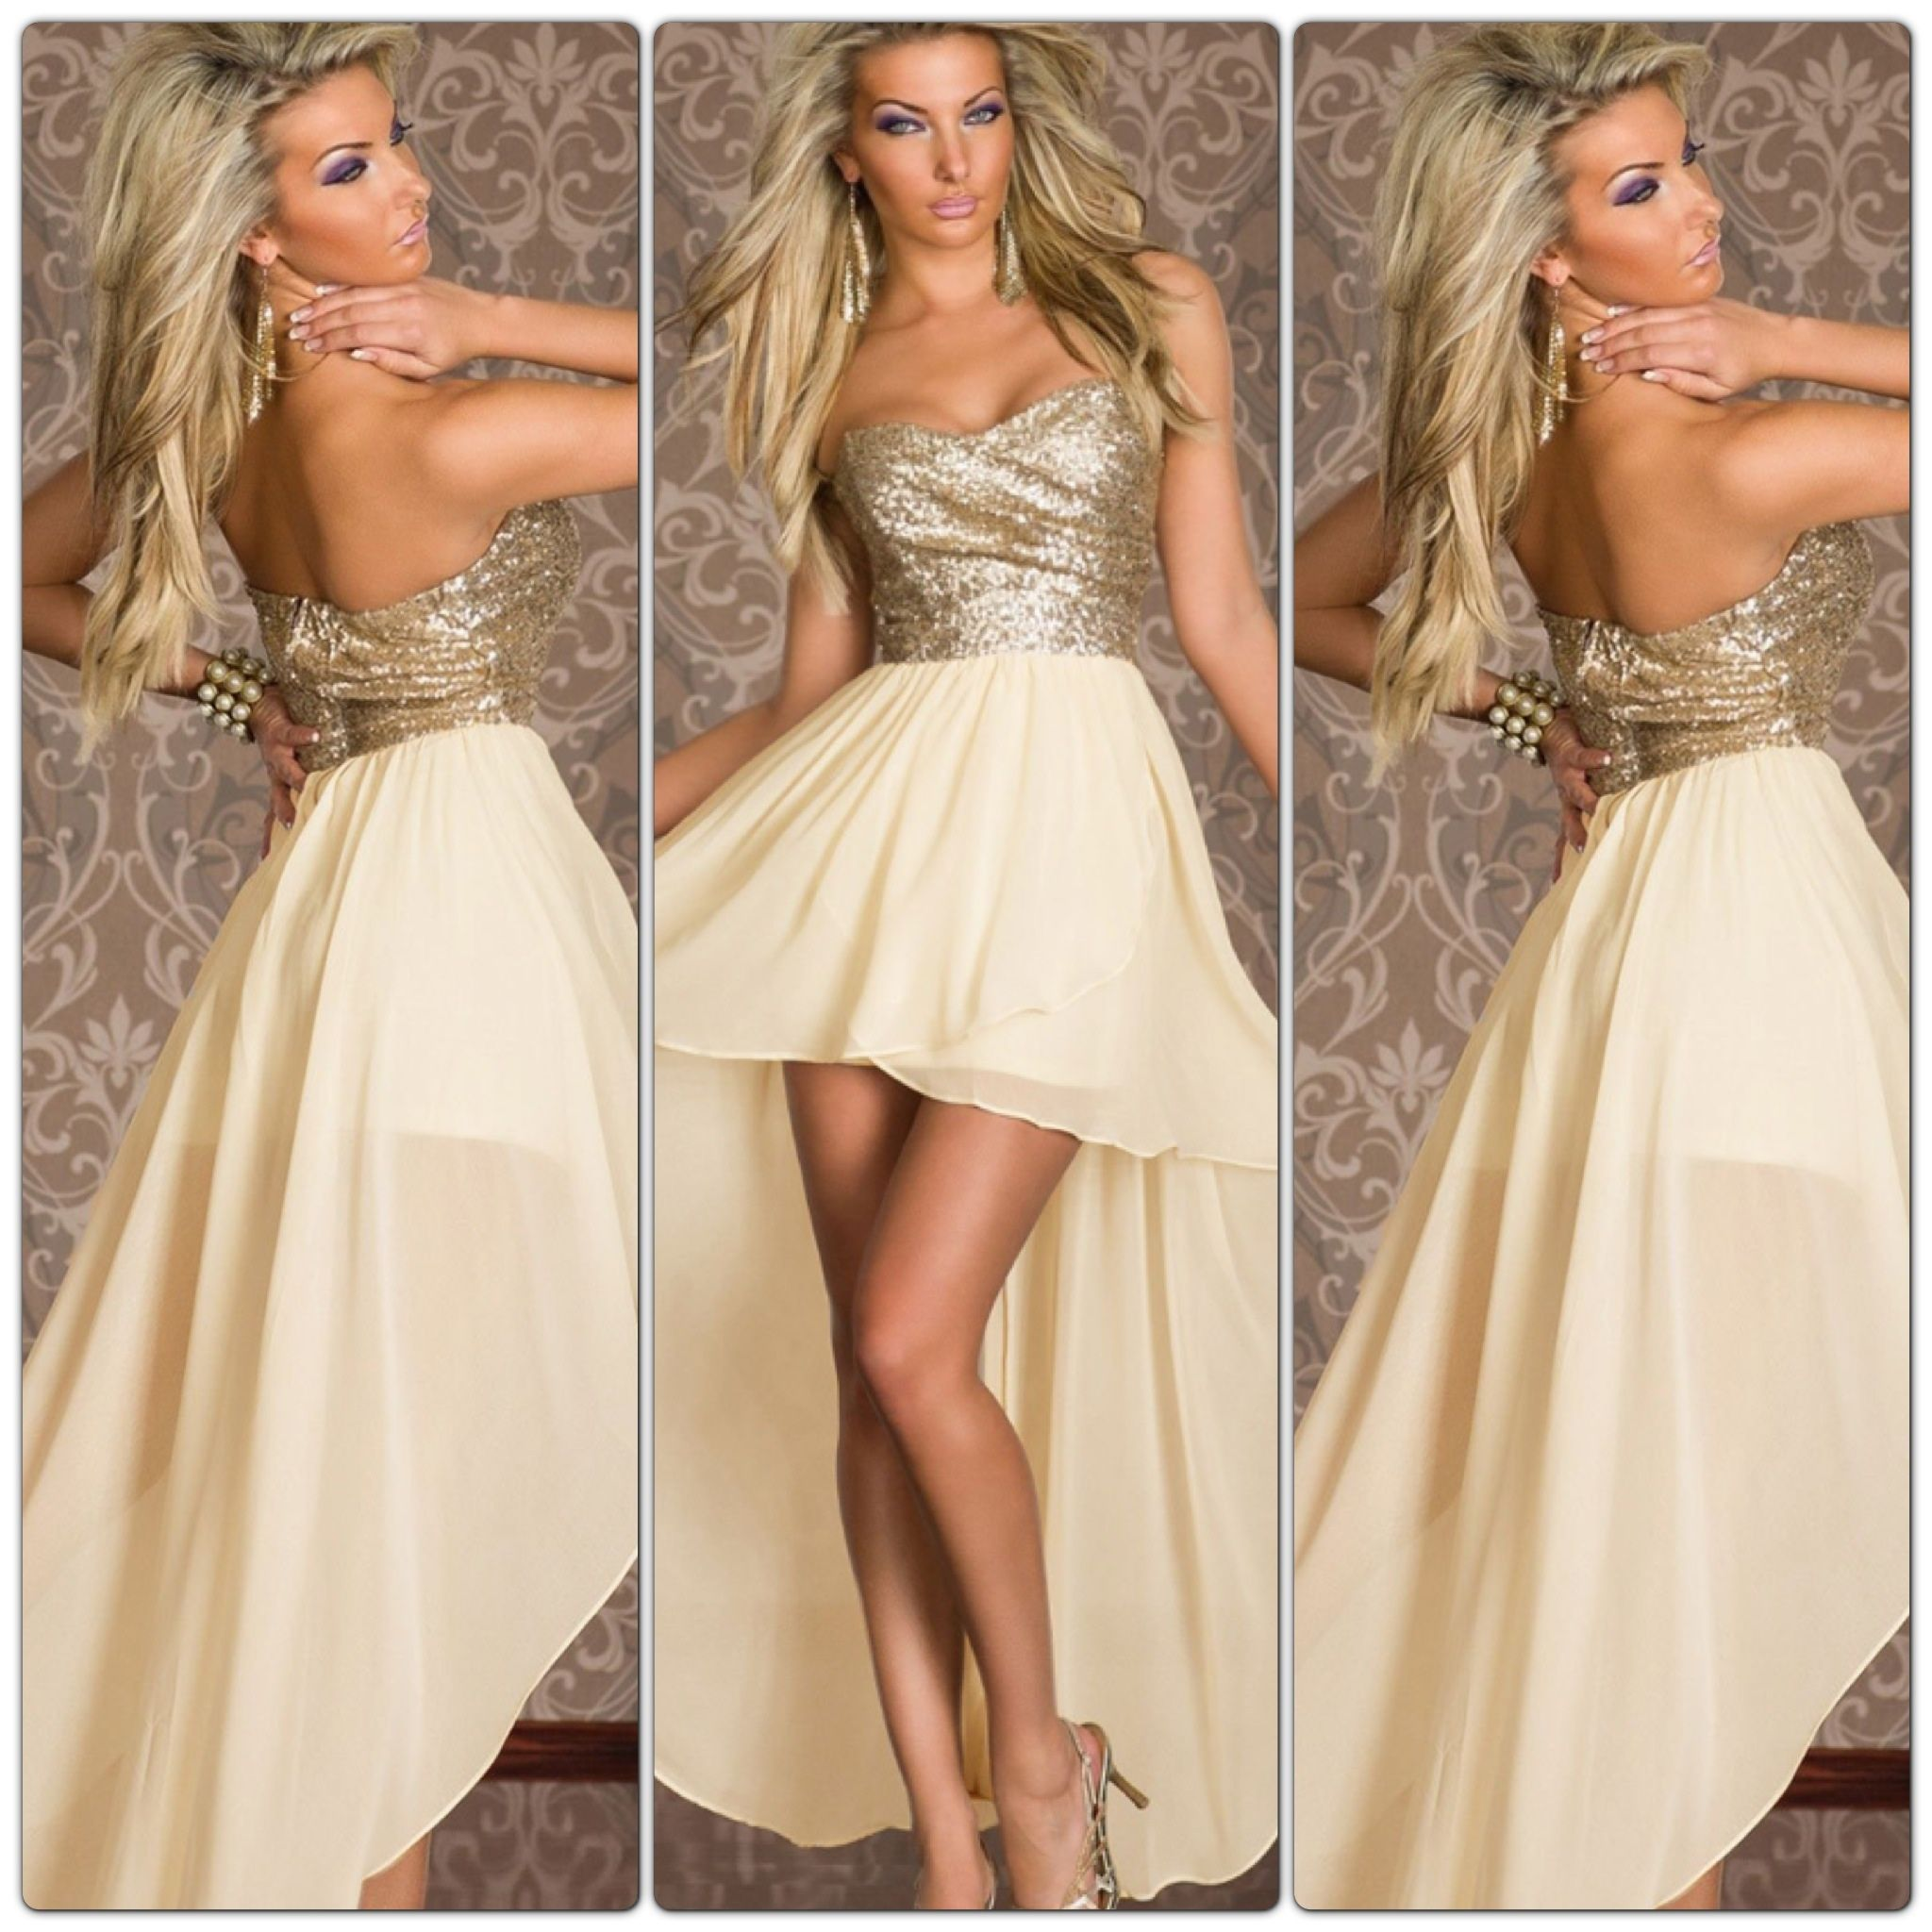 Gold high low dress urban ray boutique online store powered by